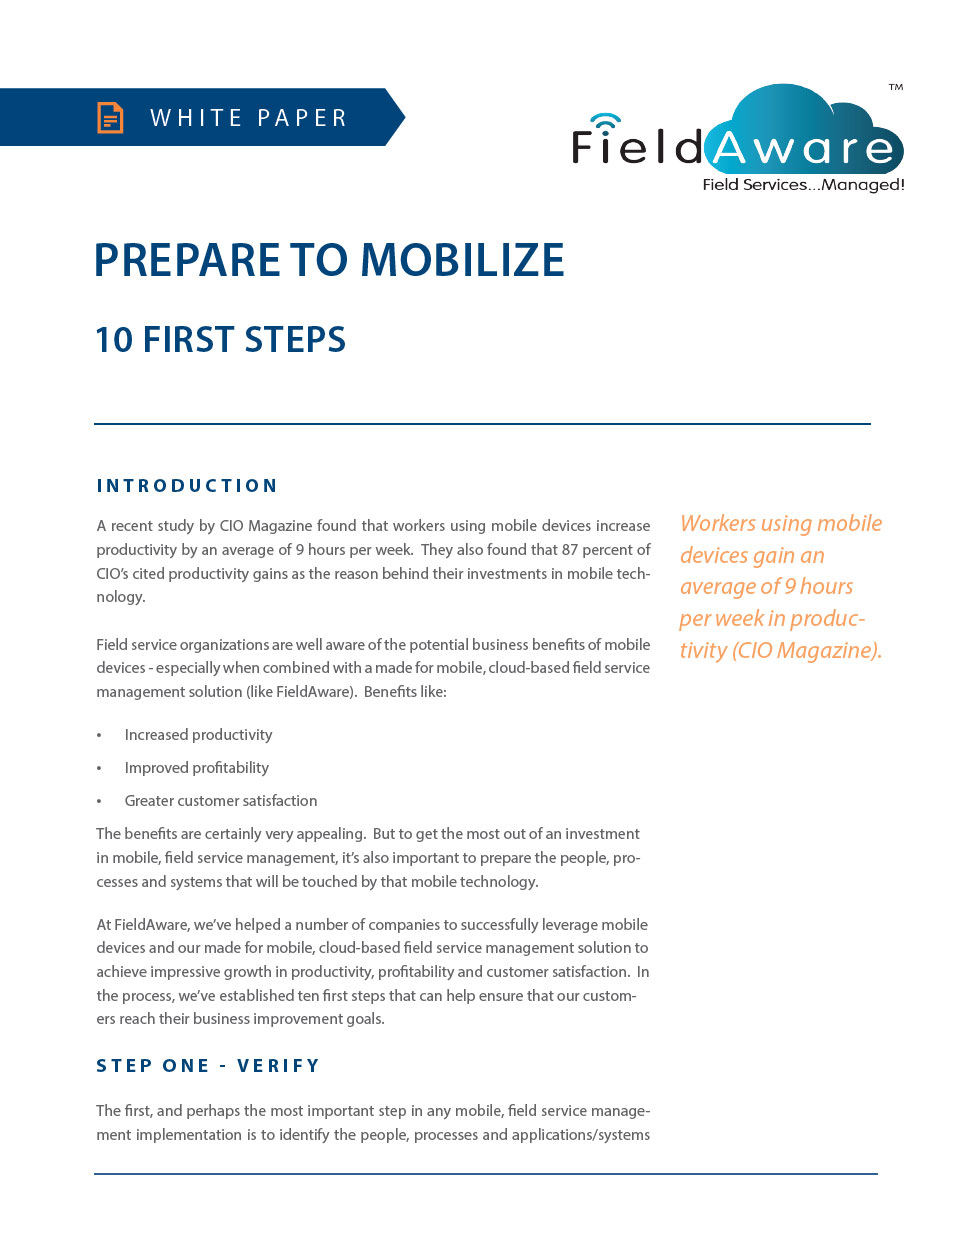 Prepare To Mobilize - 10 First Steps White Paper